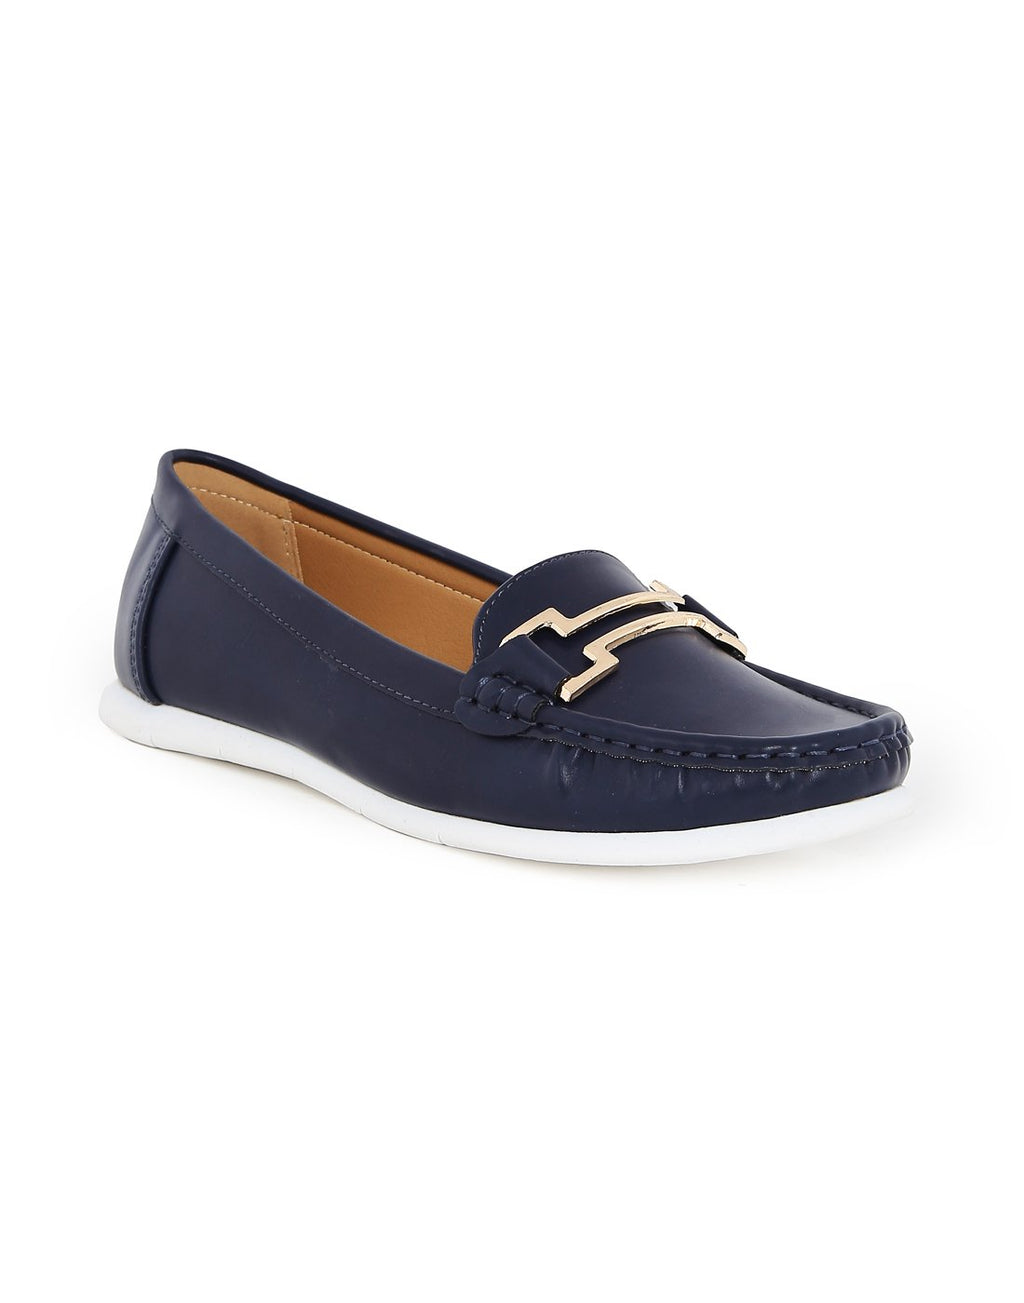 Thaleia Versatile Penny Loafers